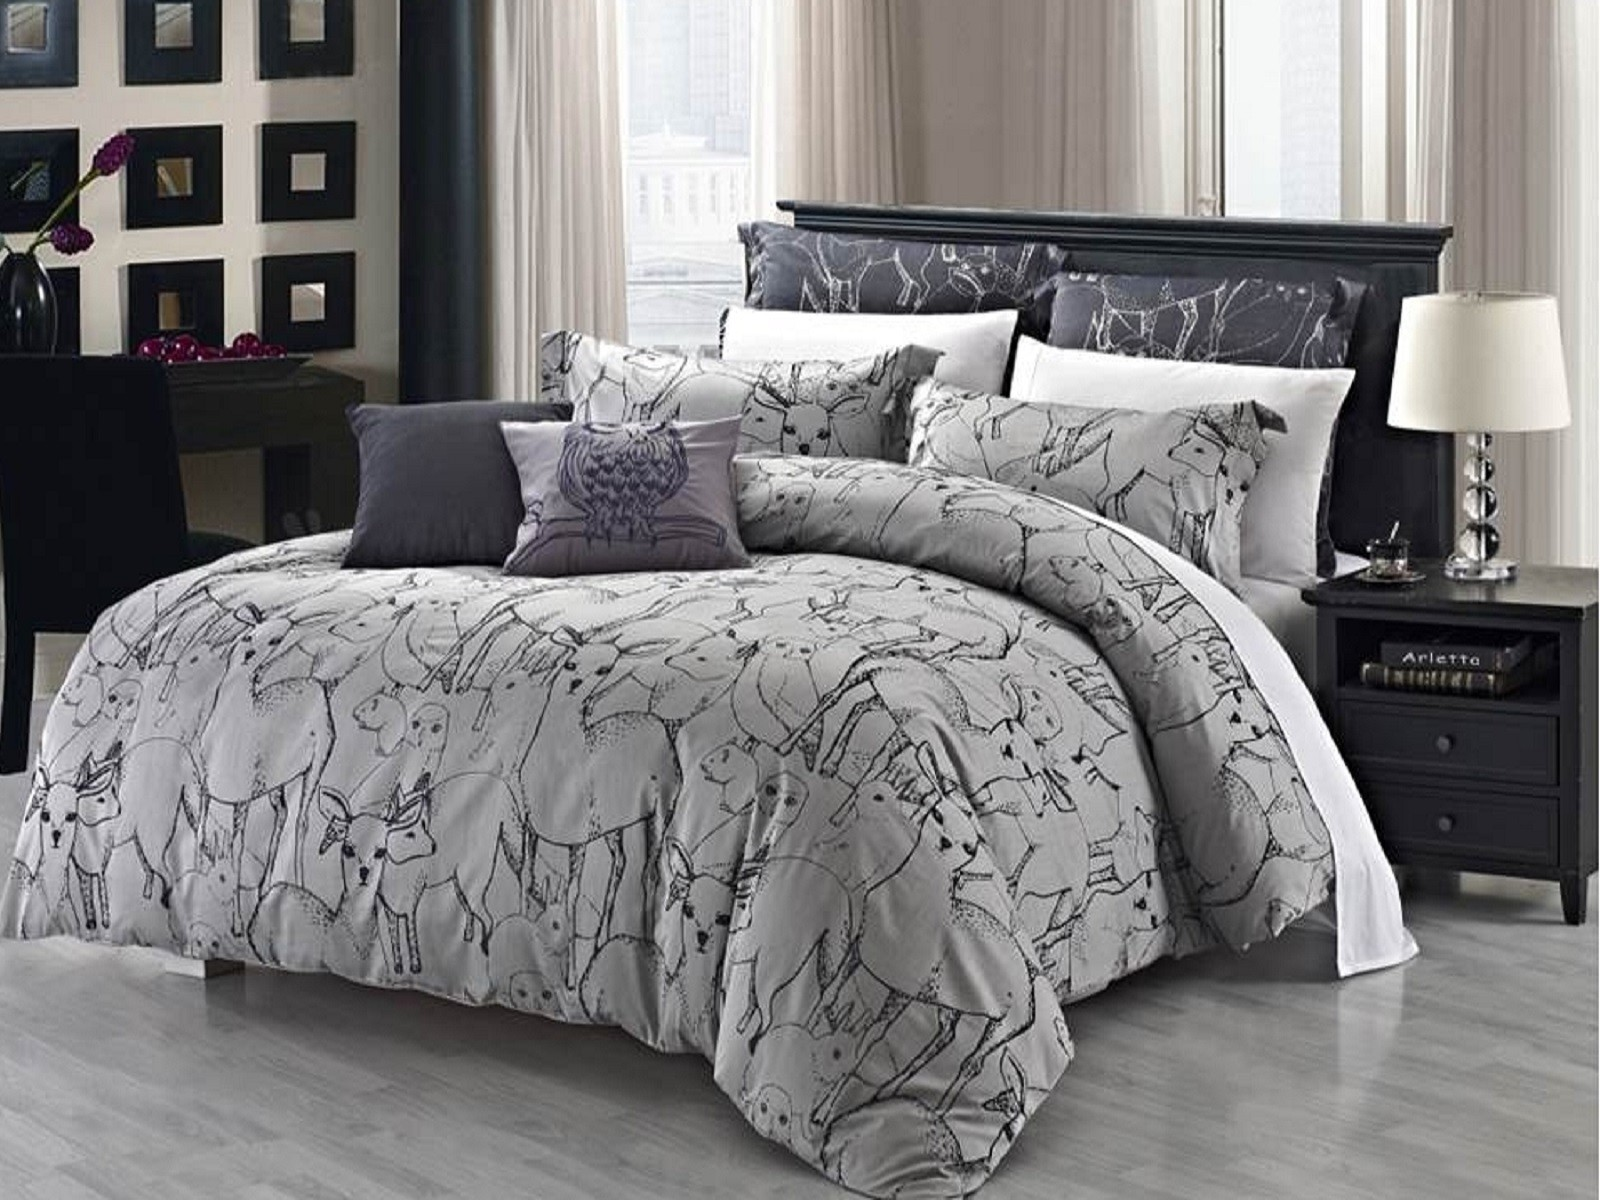 Exquisite Duvet Cover Sets For Contemporary Bedroom